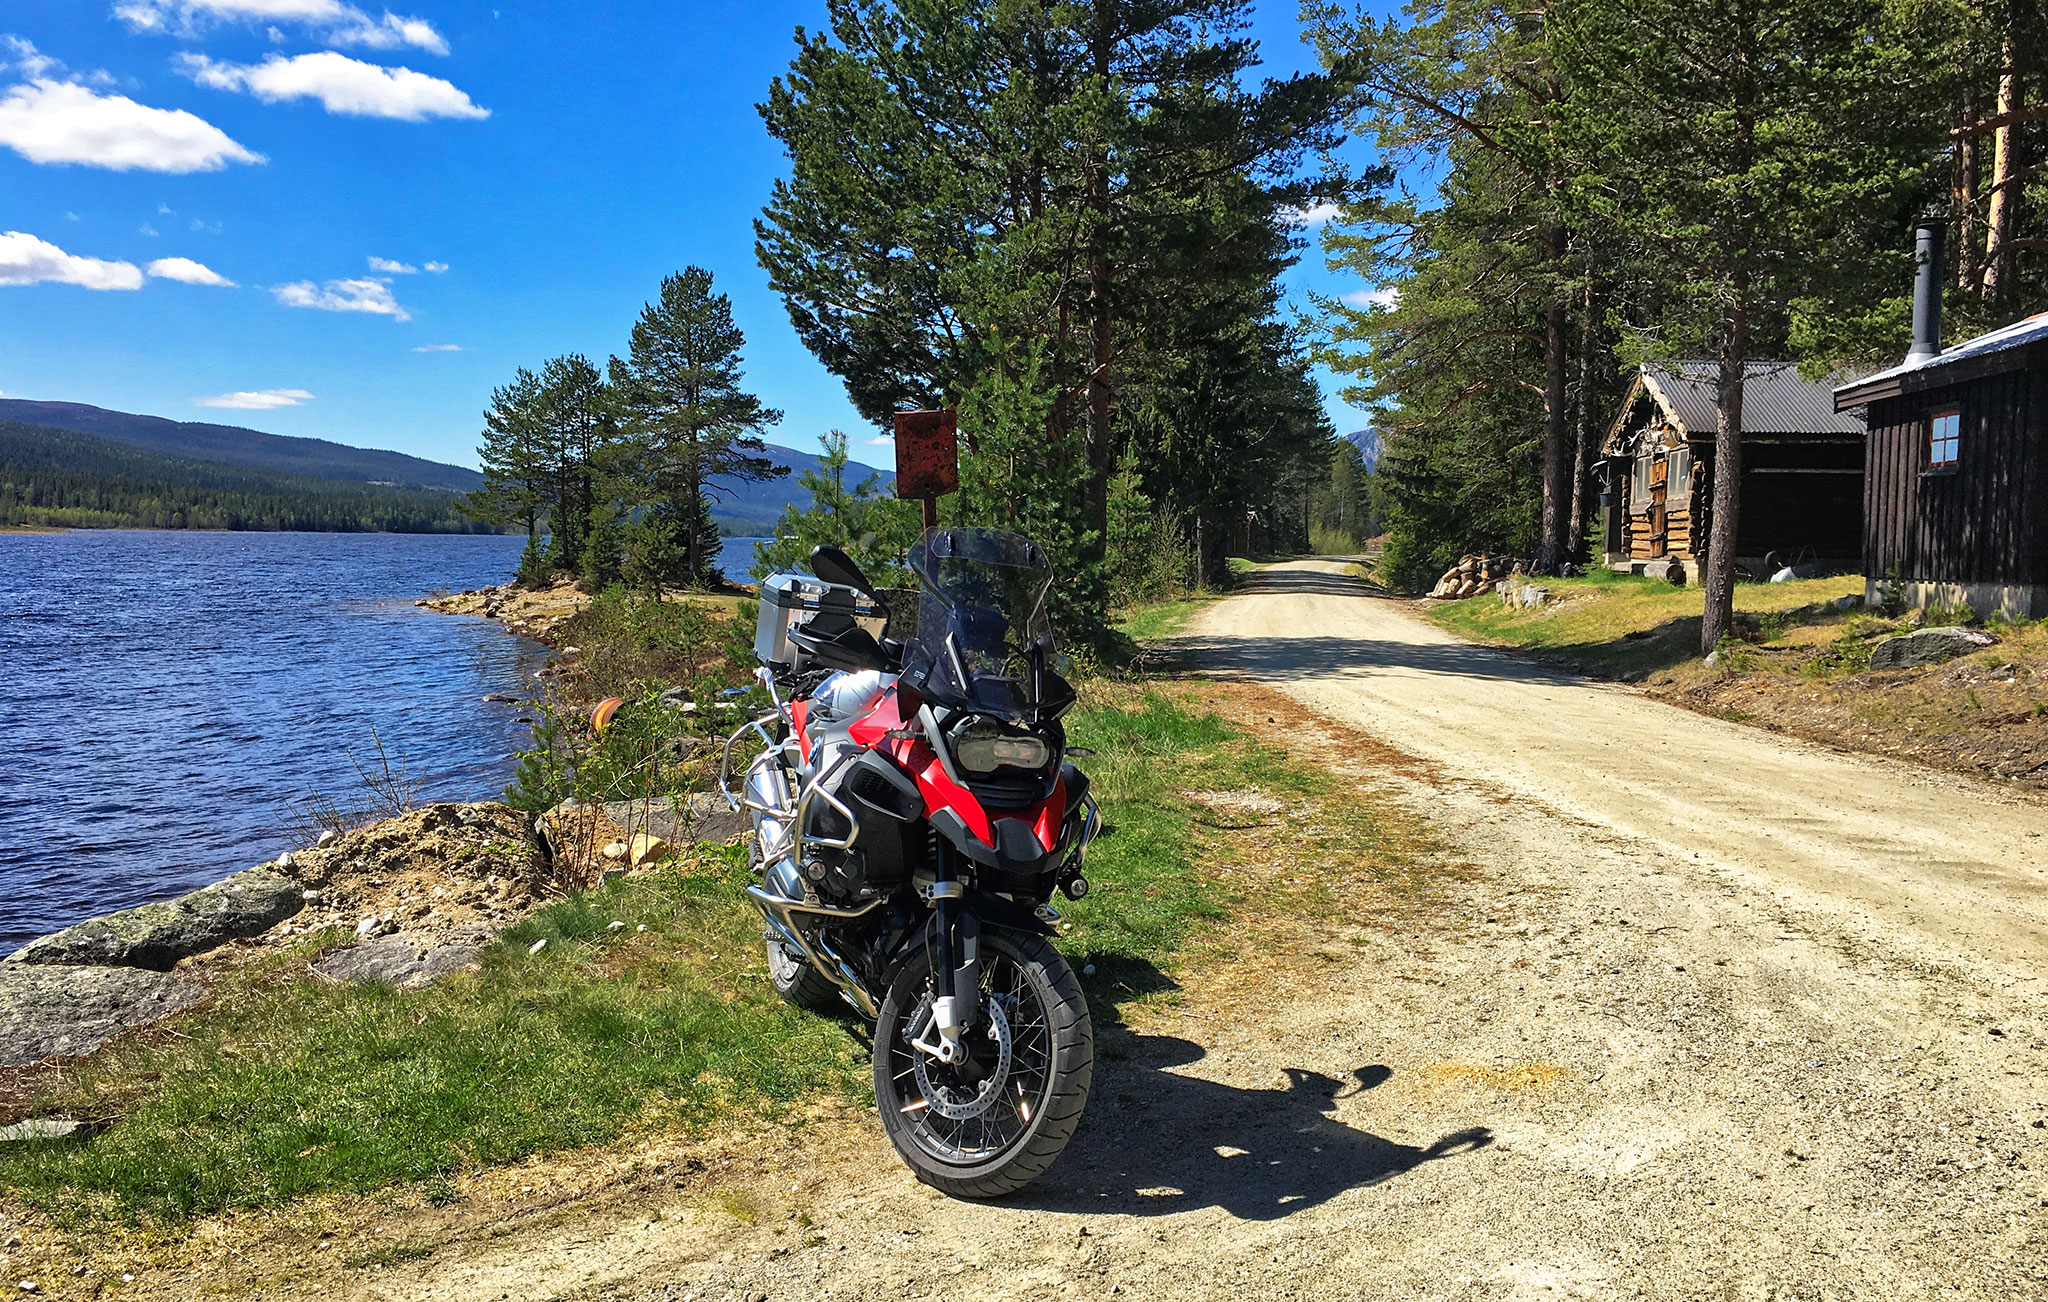 Into Vassfaret, a national park in Norway